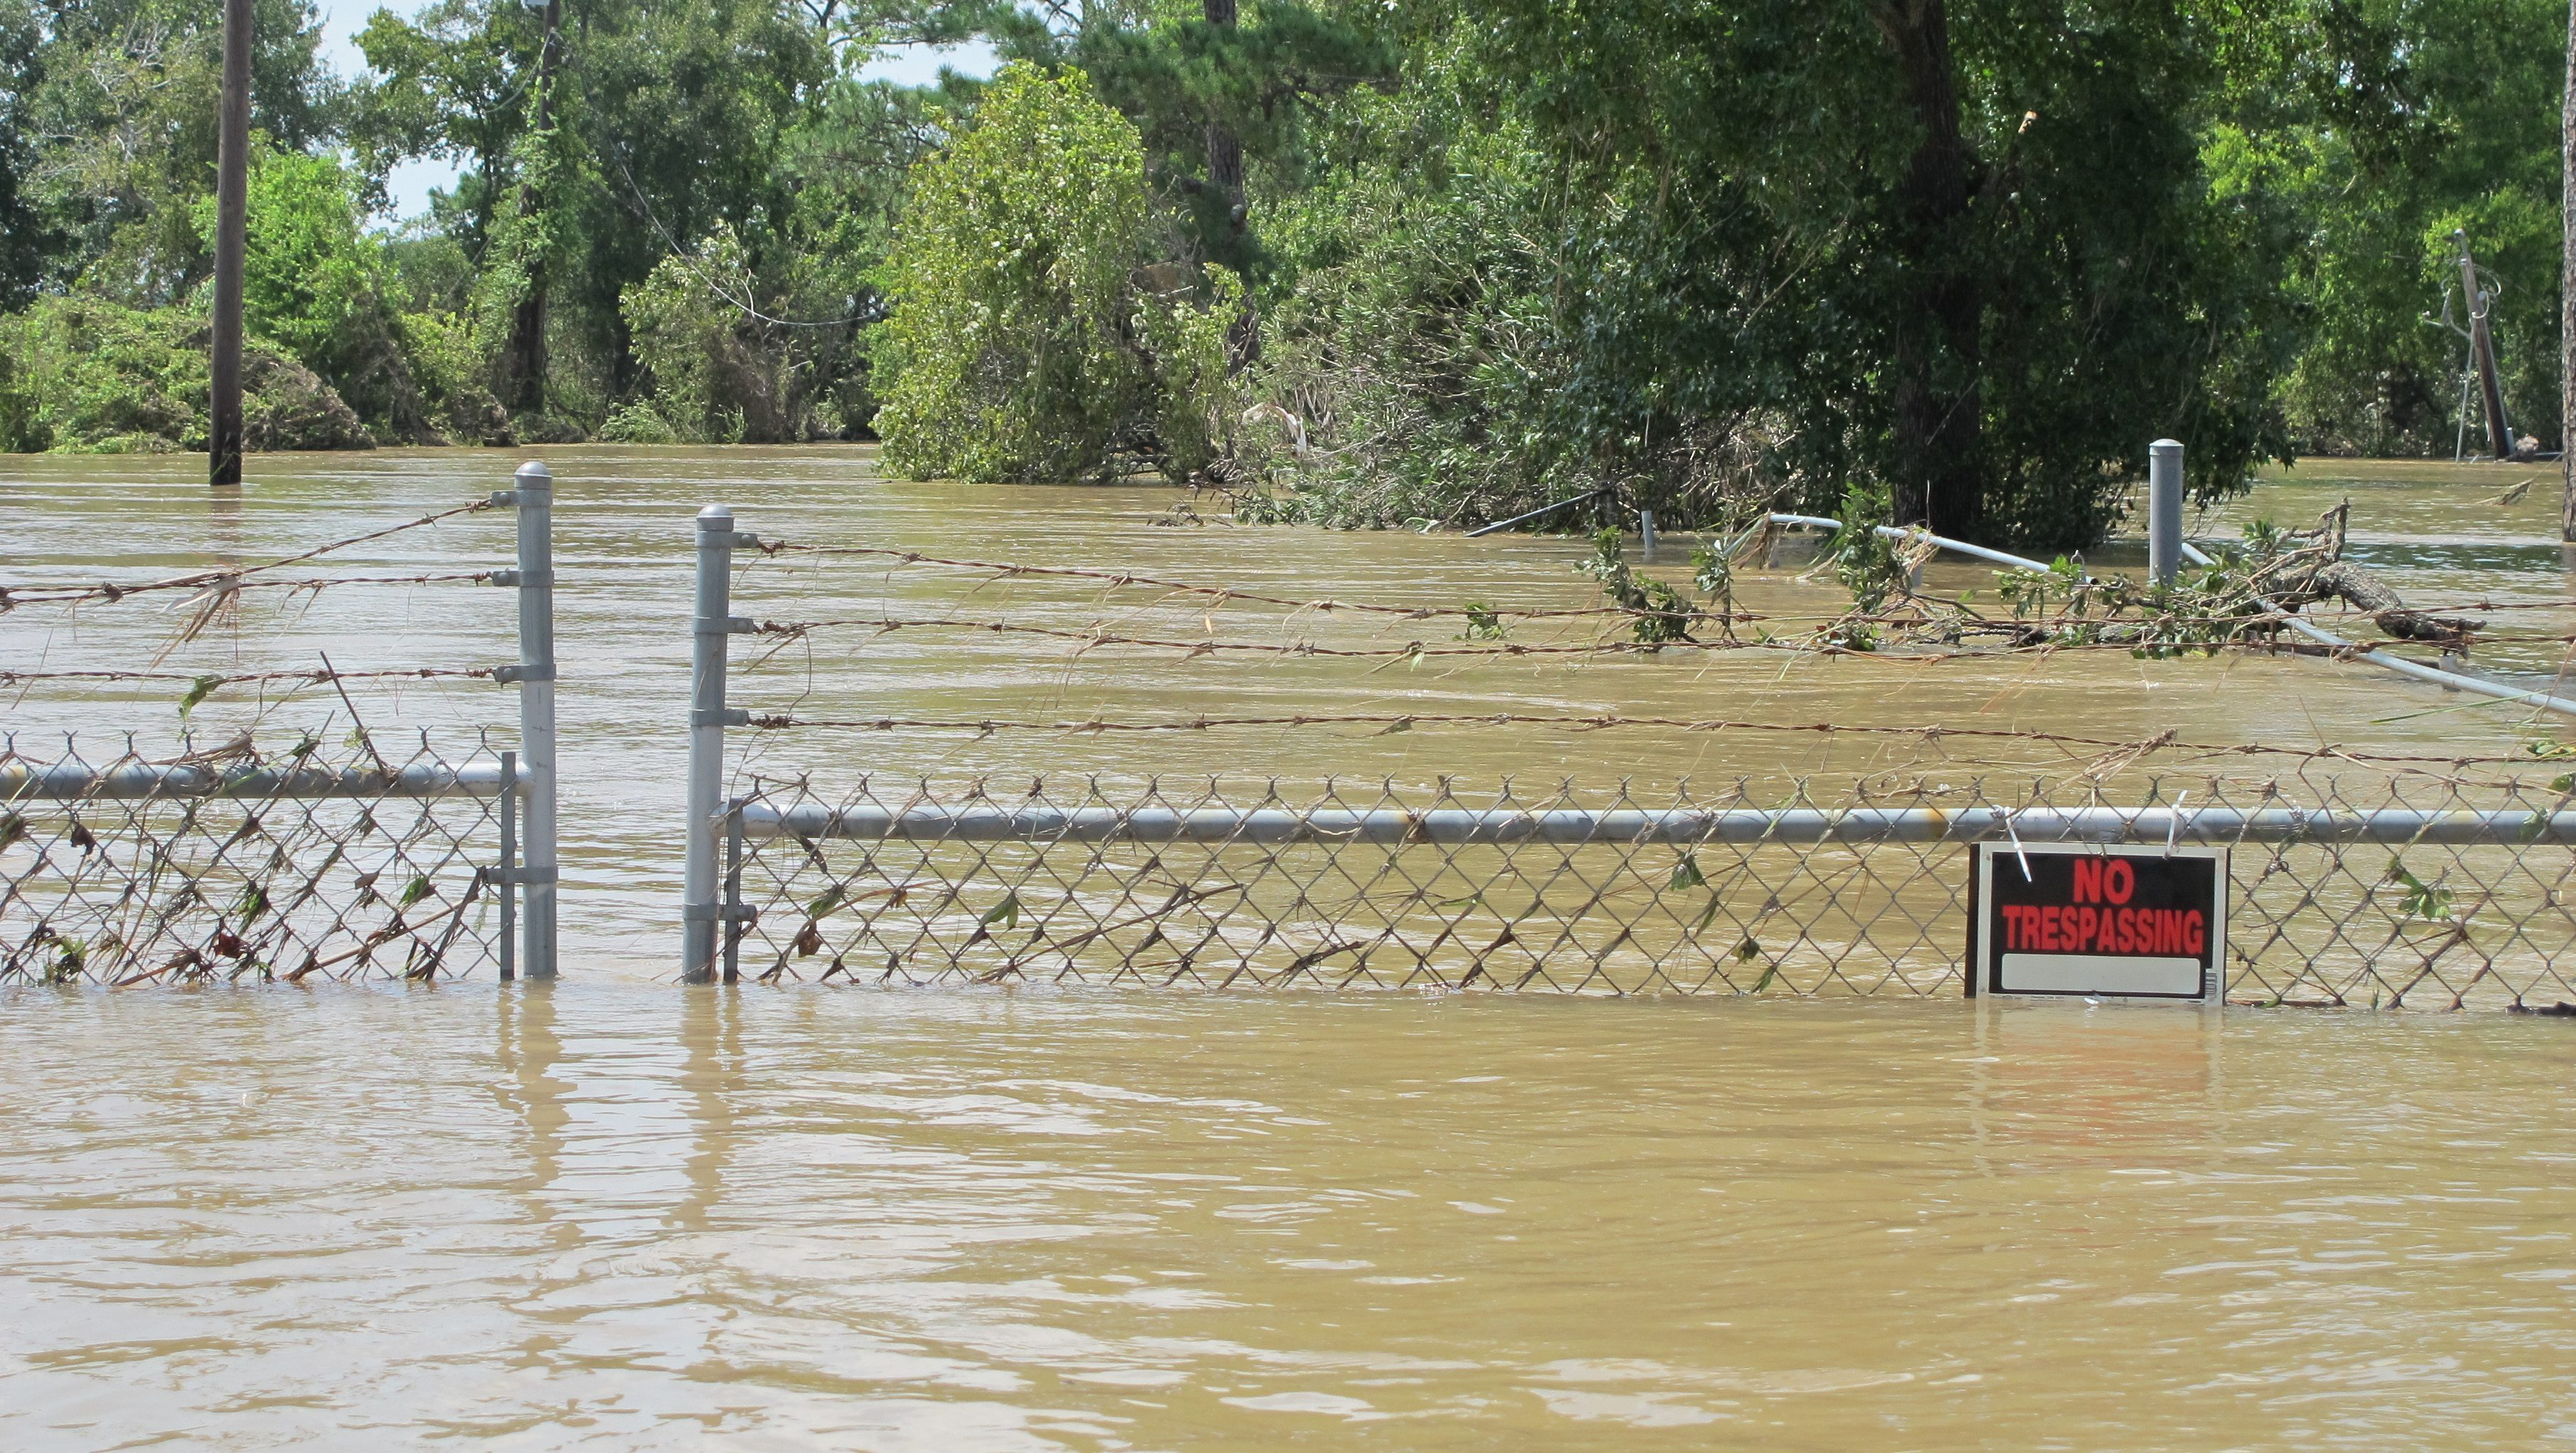 This is a picture of the Highlands Acid Pit Superfund site in Highlands, Texas, shortly after Hurricane Harvey. Normally, it's a place where toxic waste is cordoned off from public access.